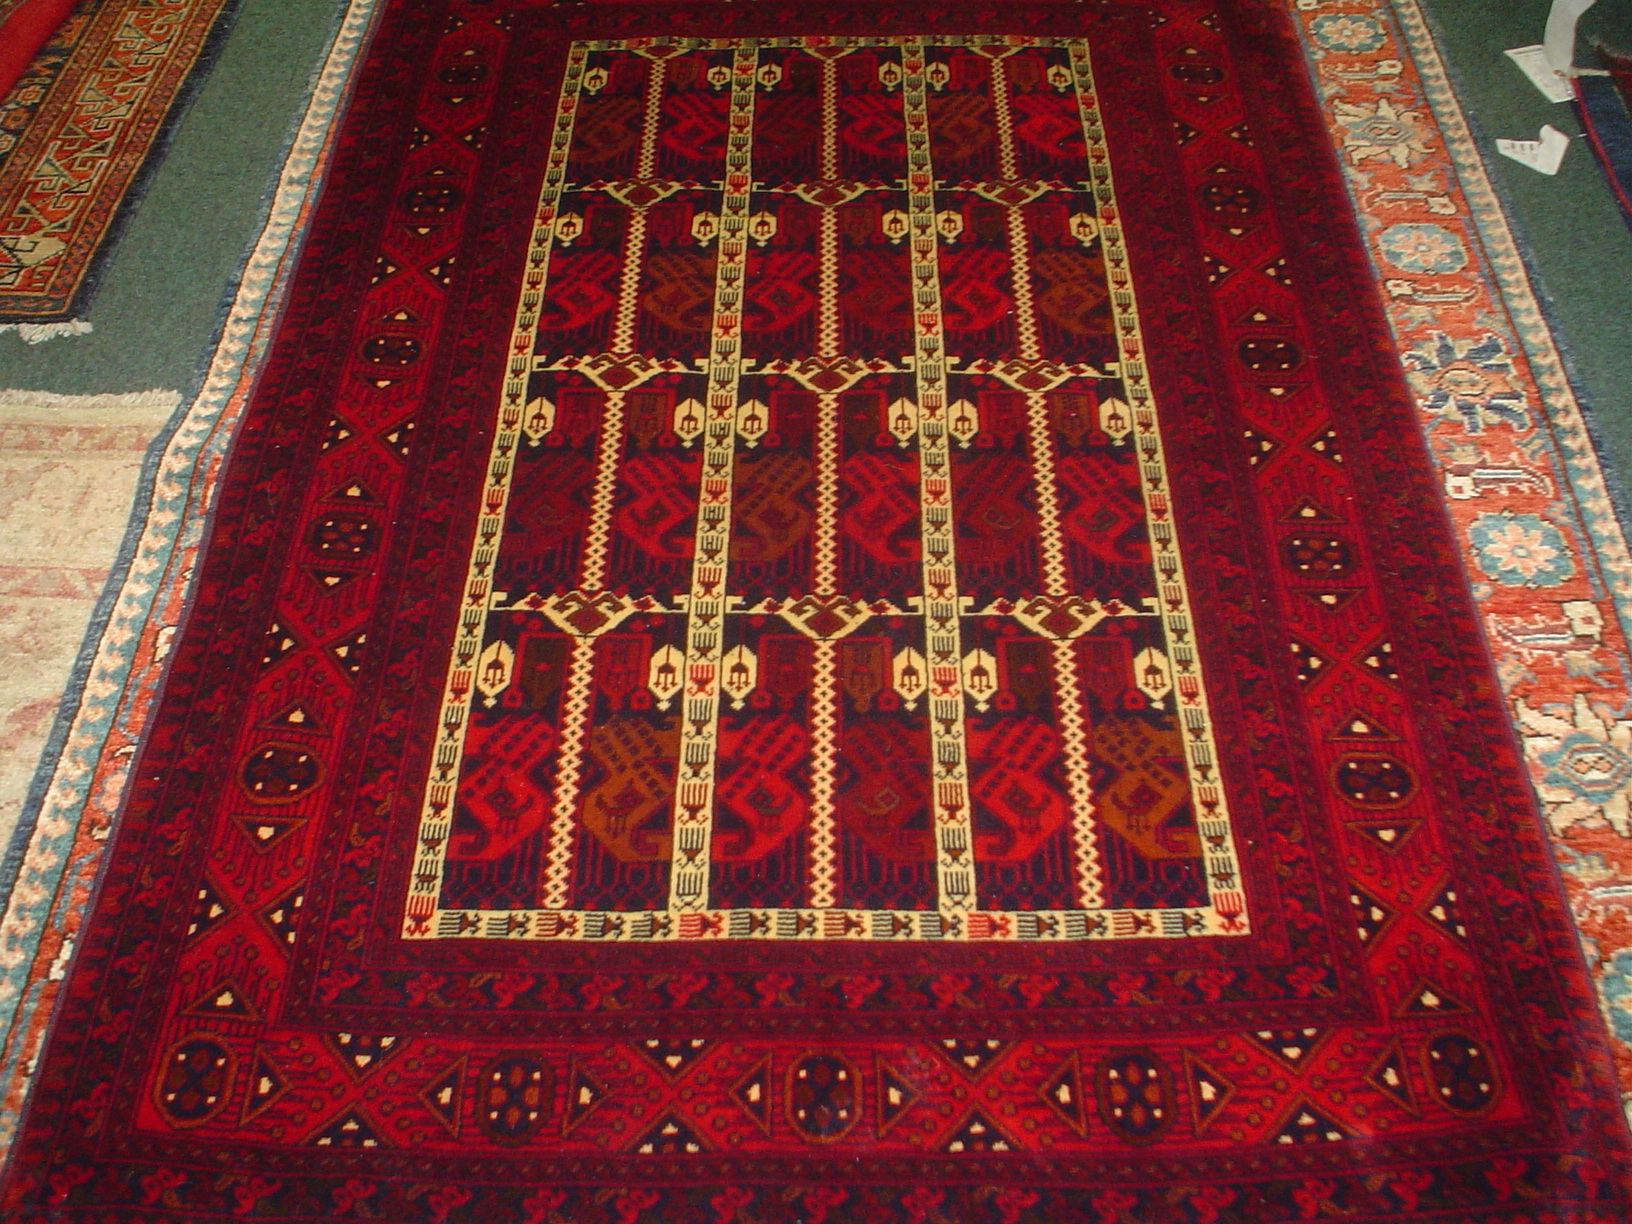 #8) 3.4 x 5 Small Afghan rug. Finely woven in deep red.